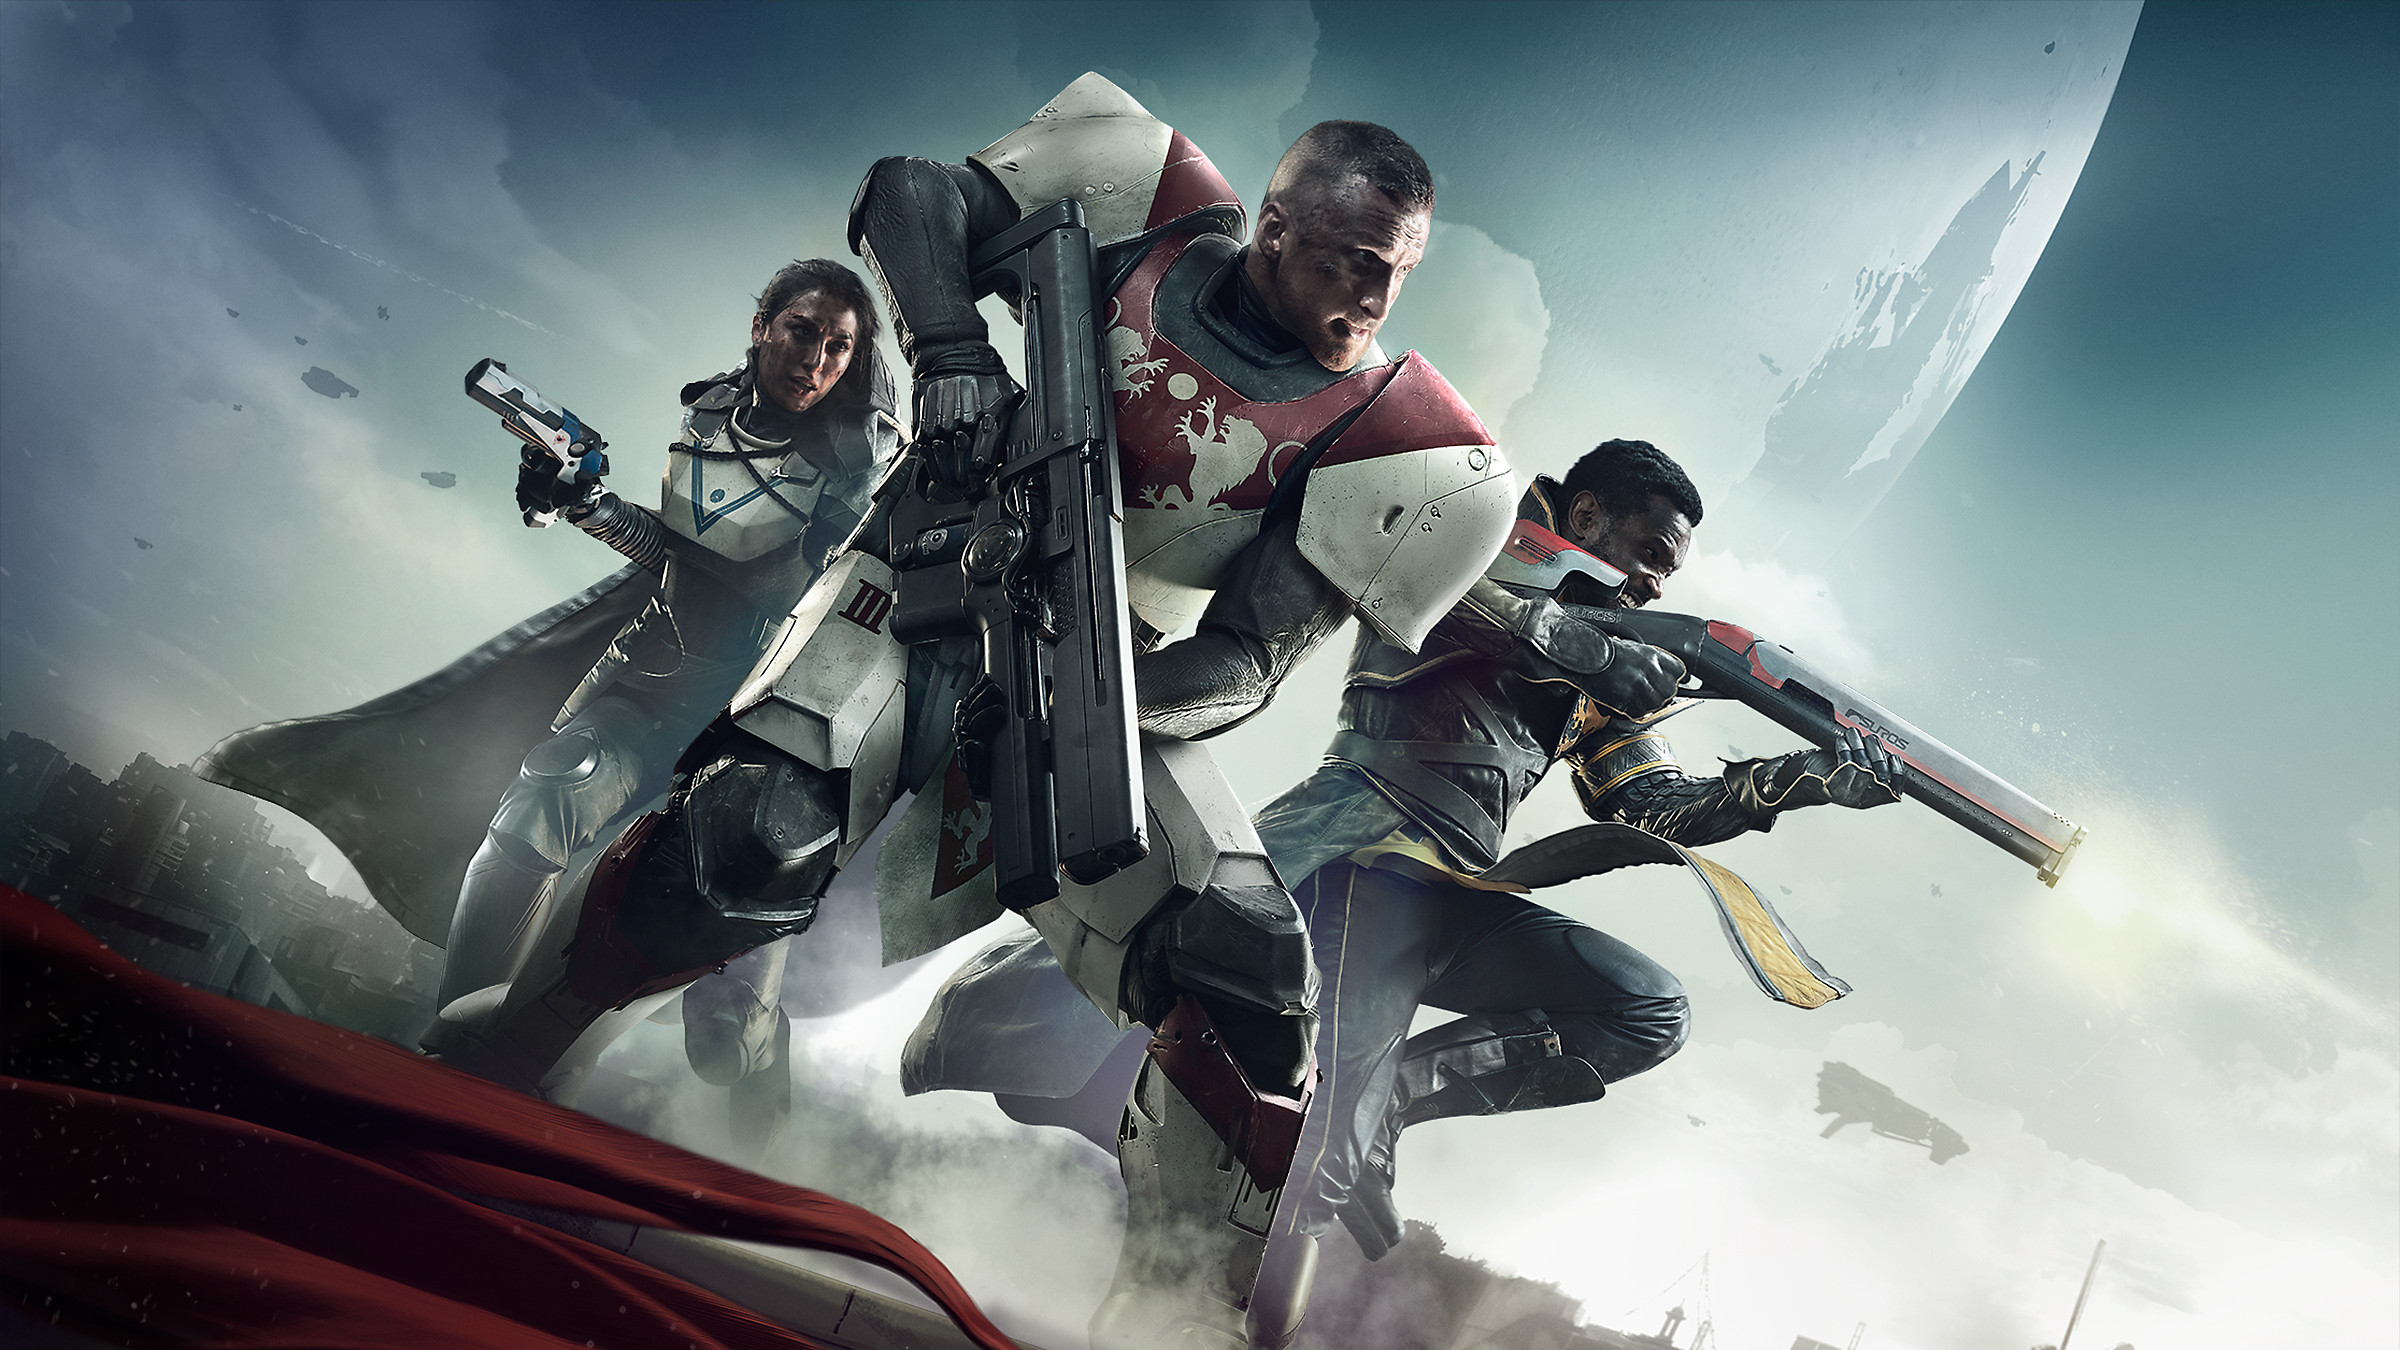 Bungie set to self-publish Destiny, ending relationship with Activision screenshot